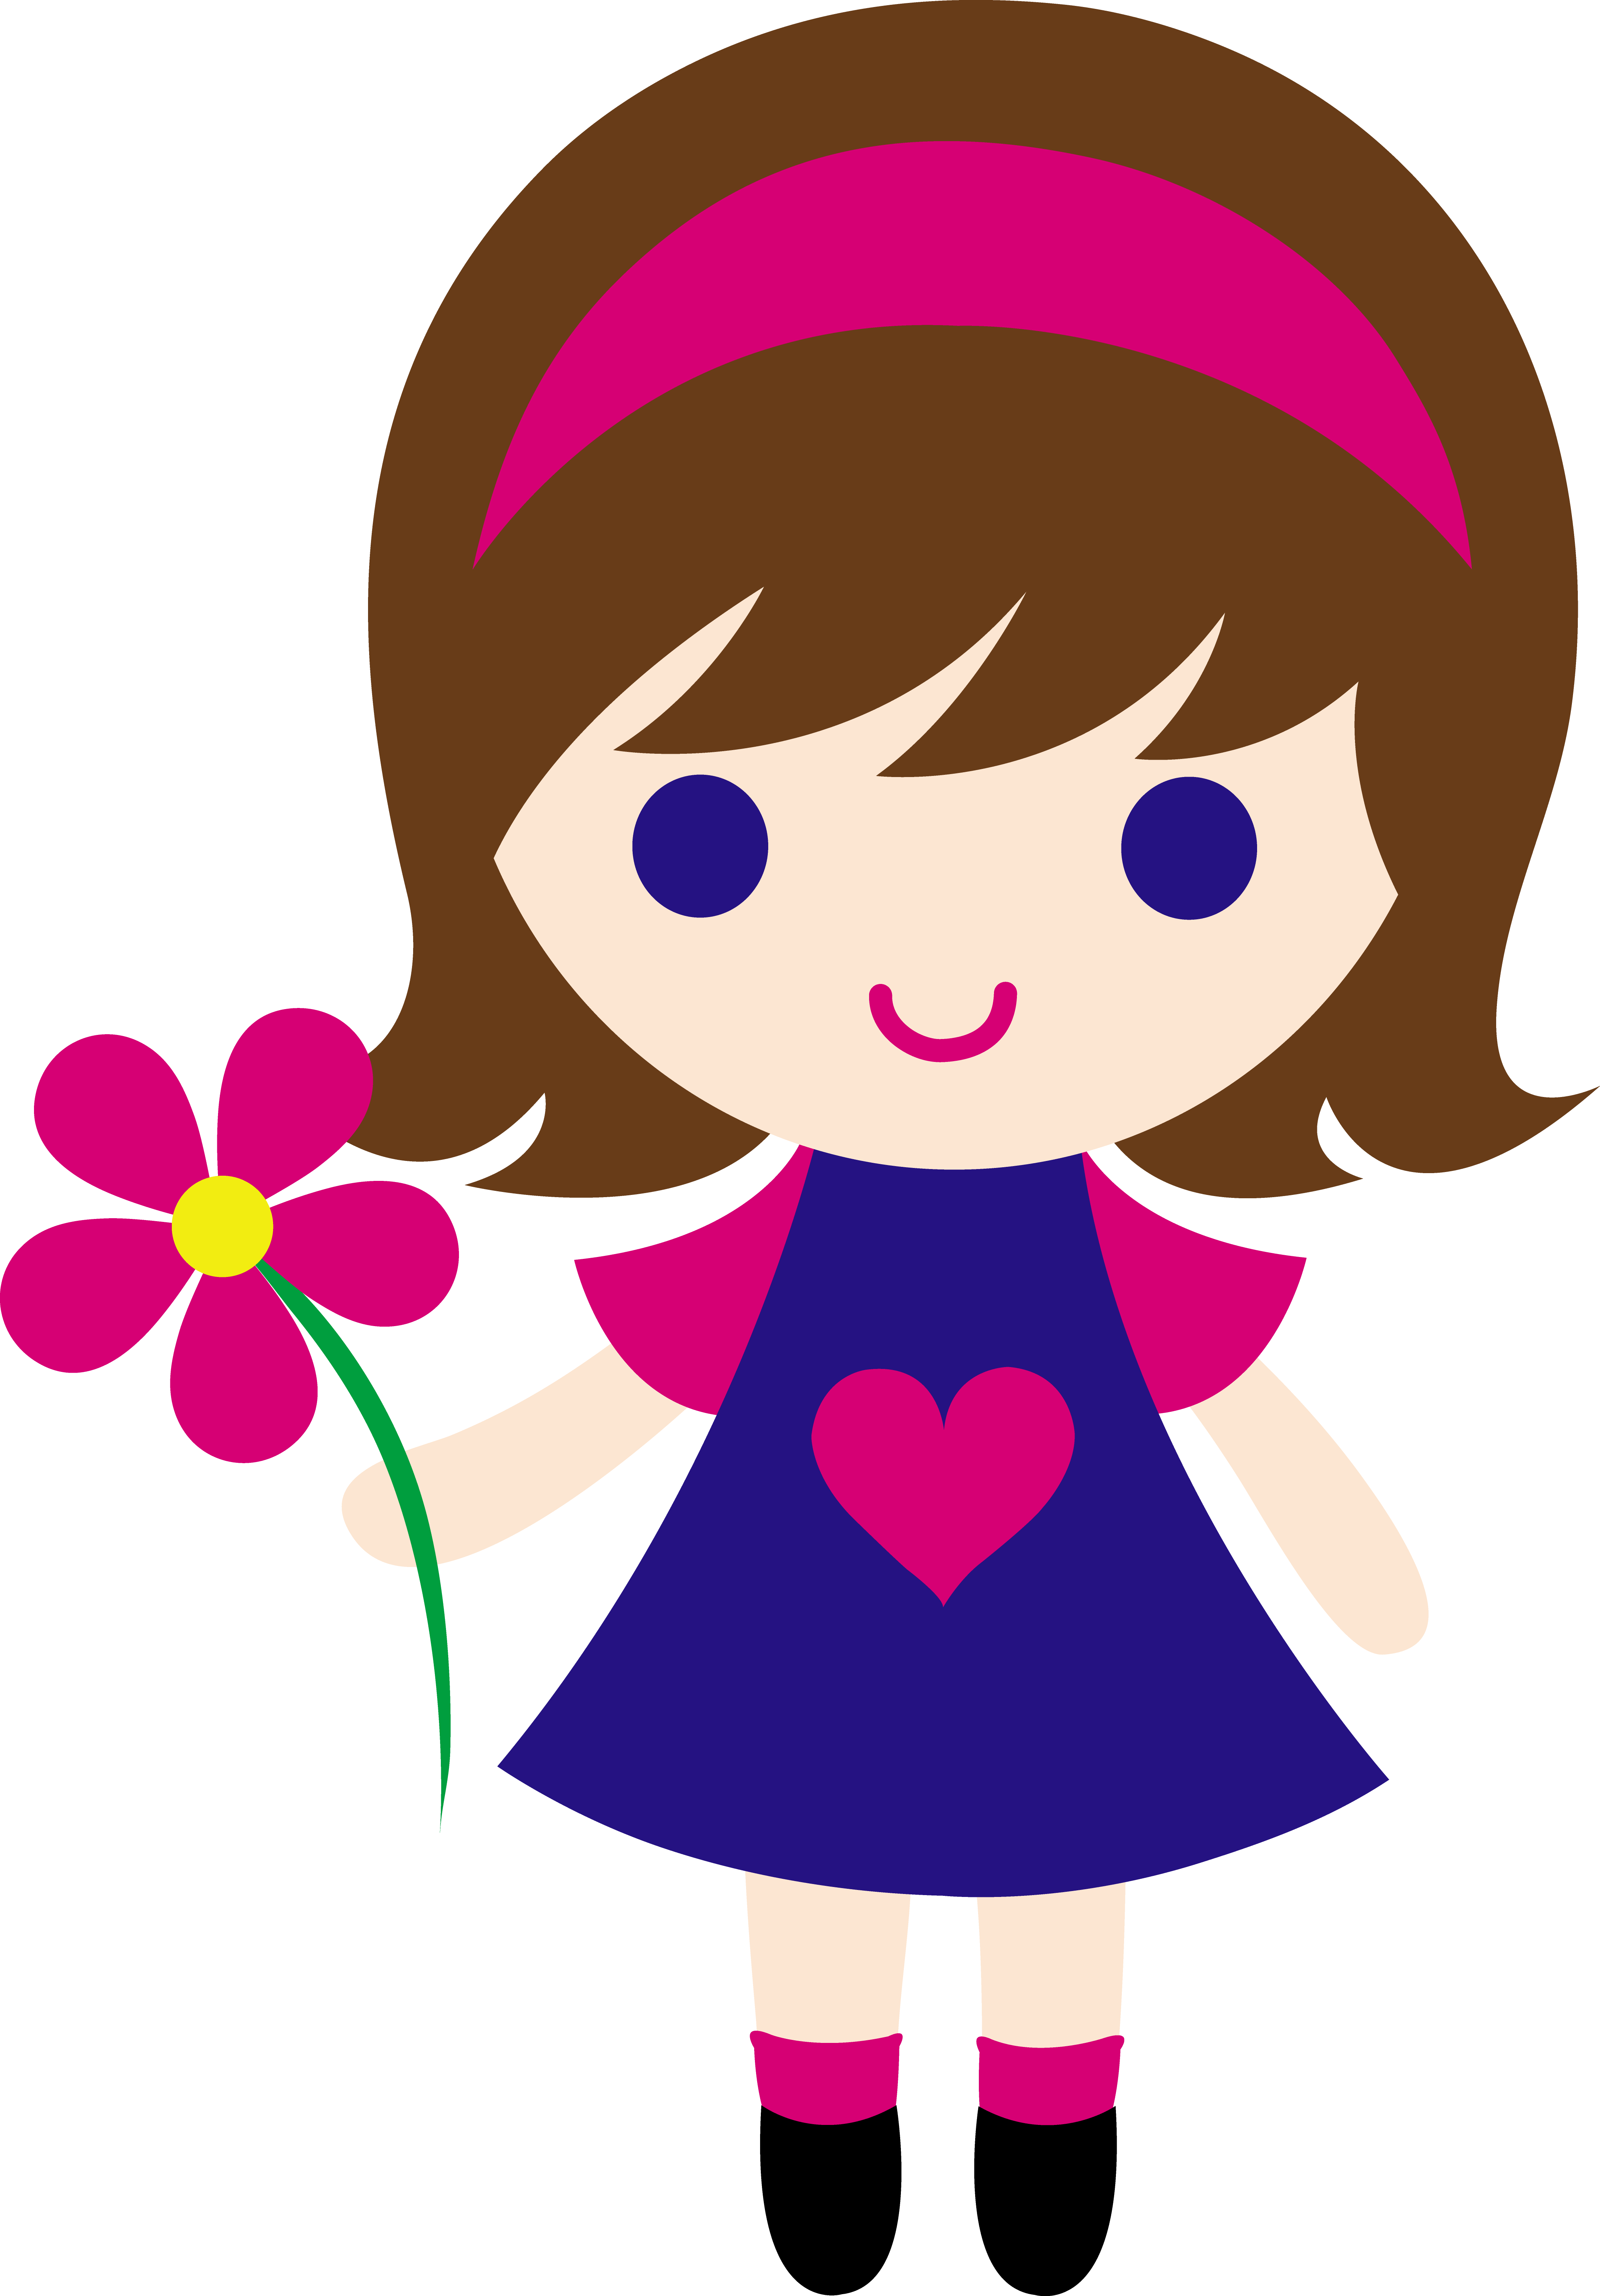 graphic transparent download My clip art of a little girl holding a pink daisy